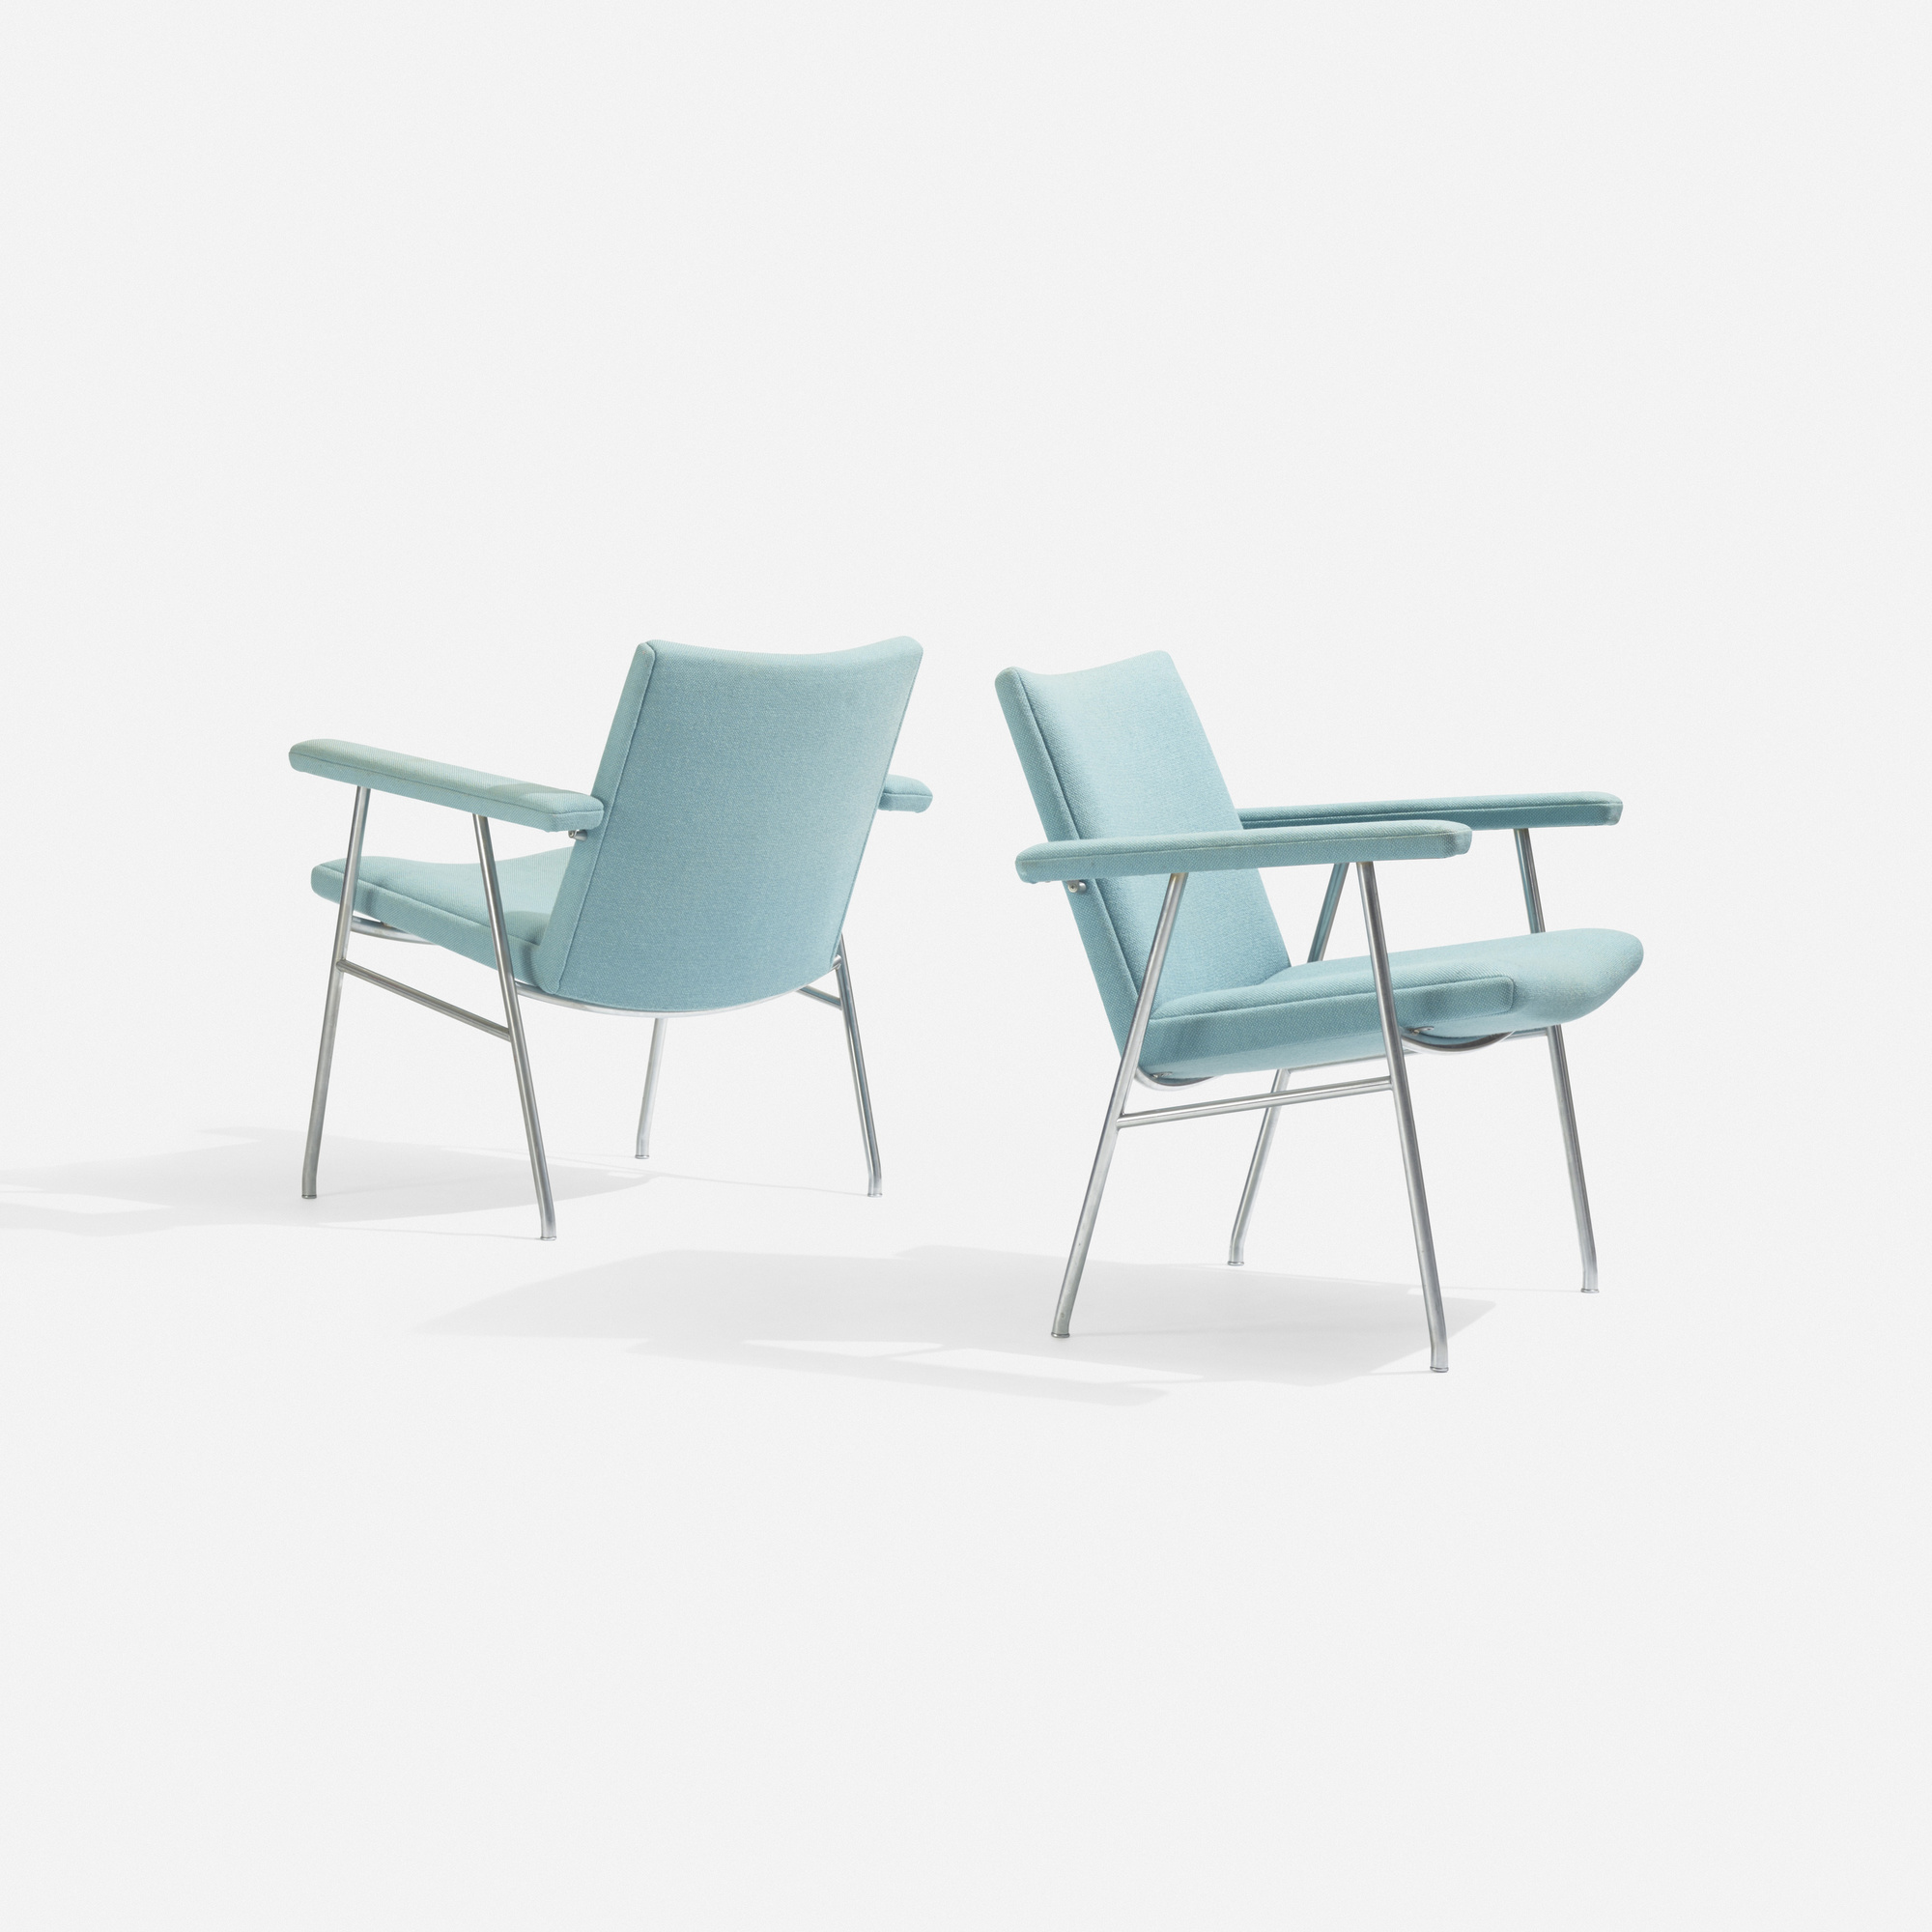 129: Hans J. Wegner / Lounge Chairs Model AP 52, Pair (1